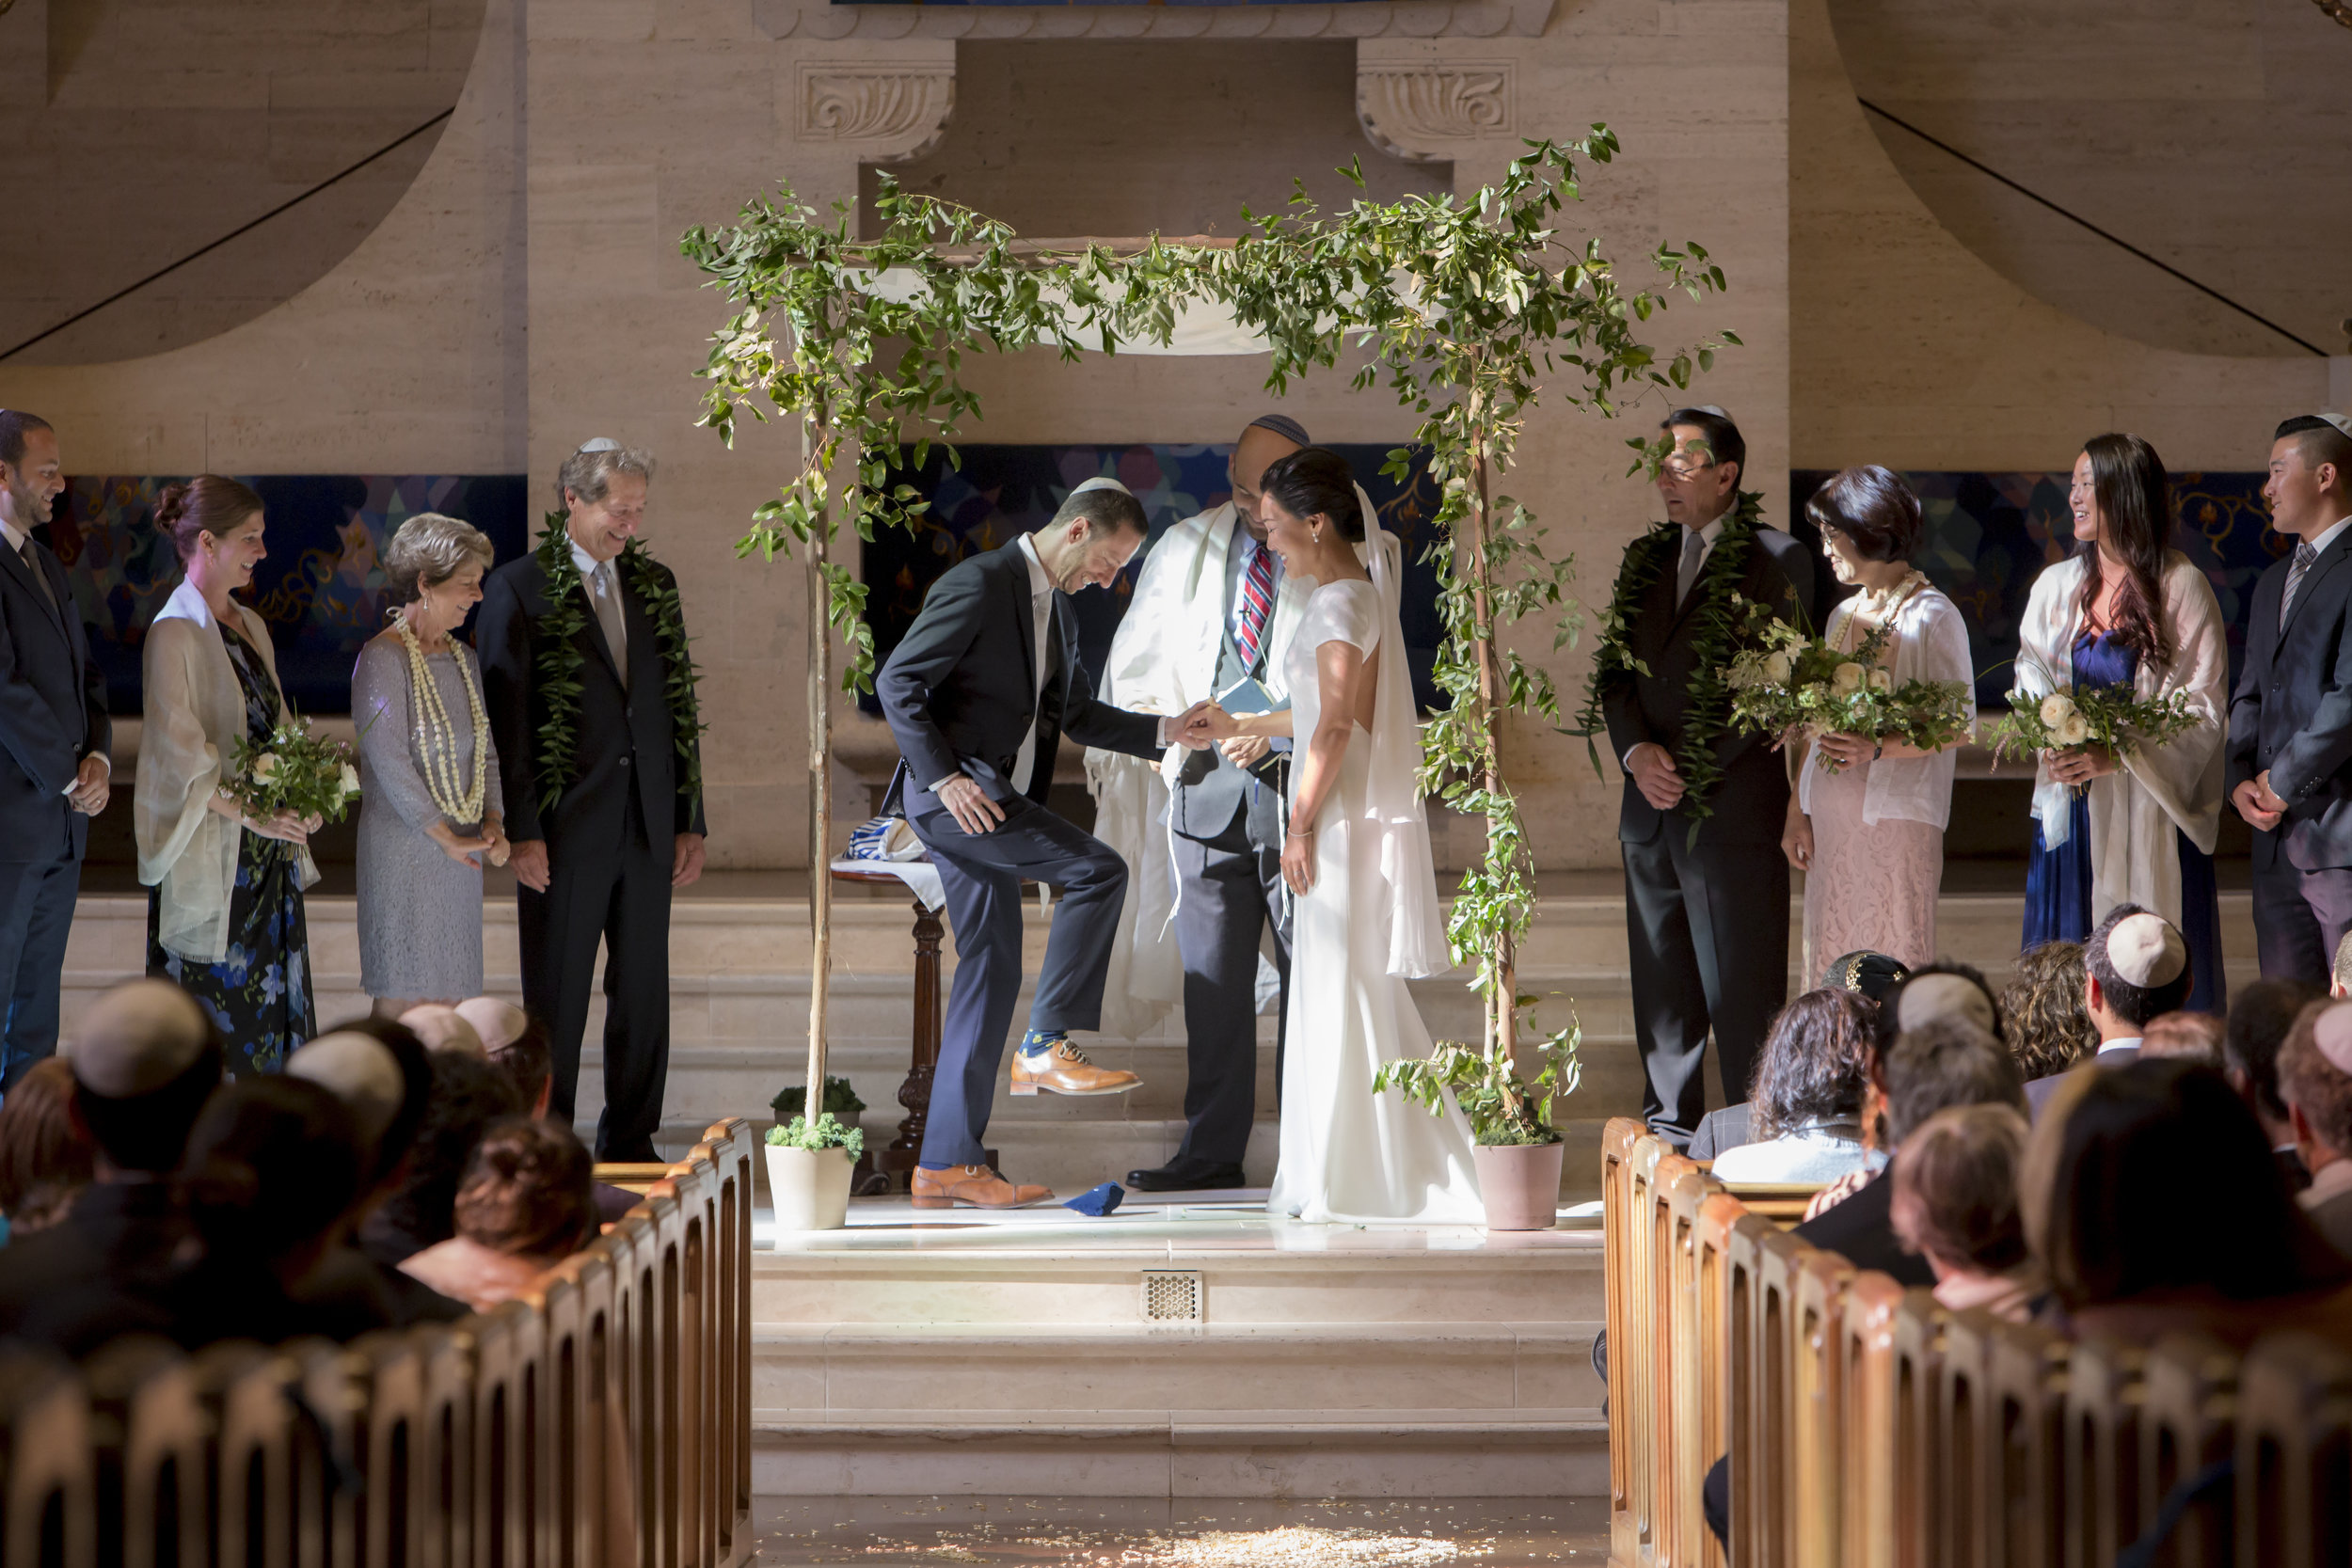 Our wedding day in the same synagogue